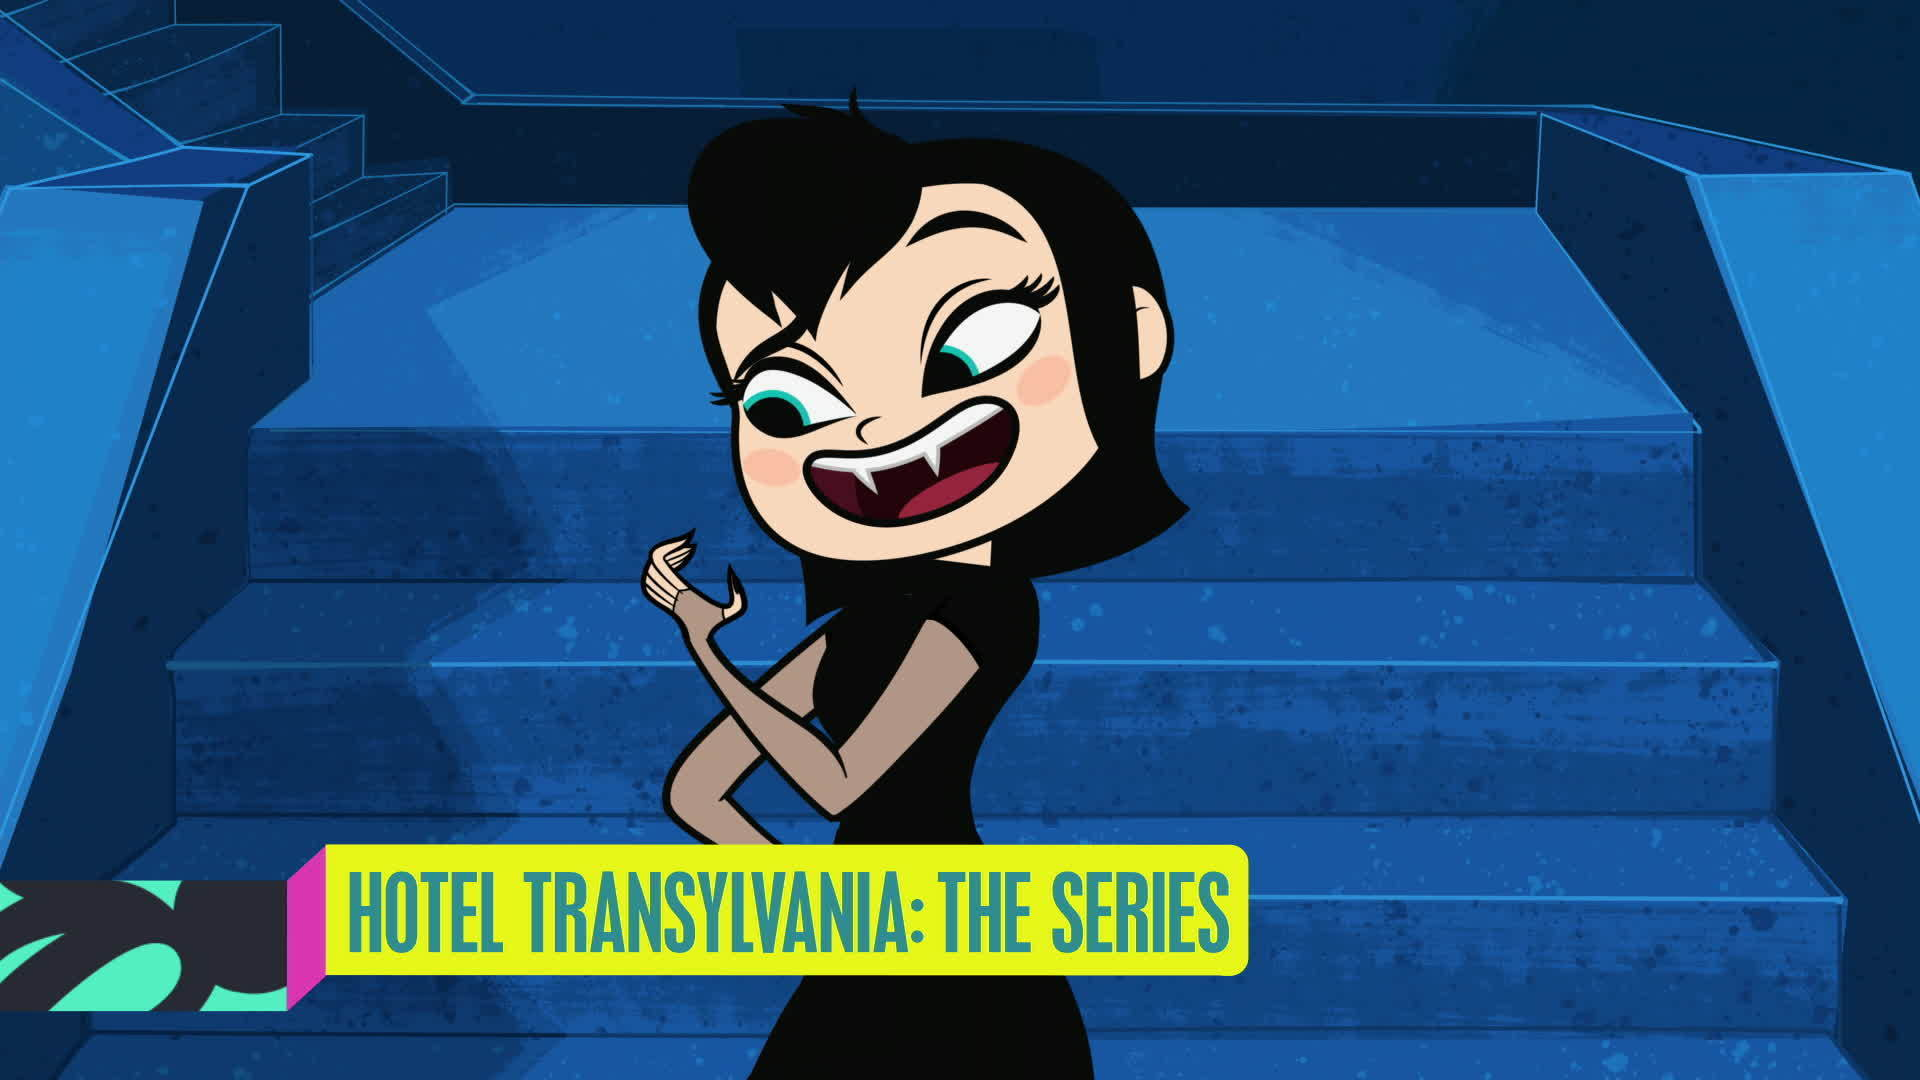 Hotel Transylvania: The Series Accouncment